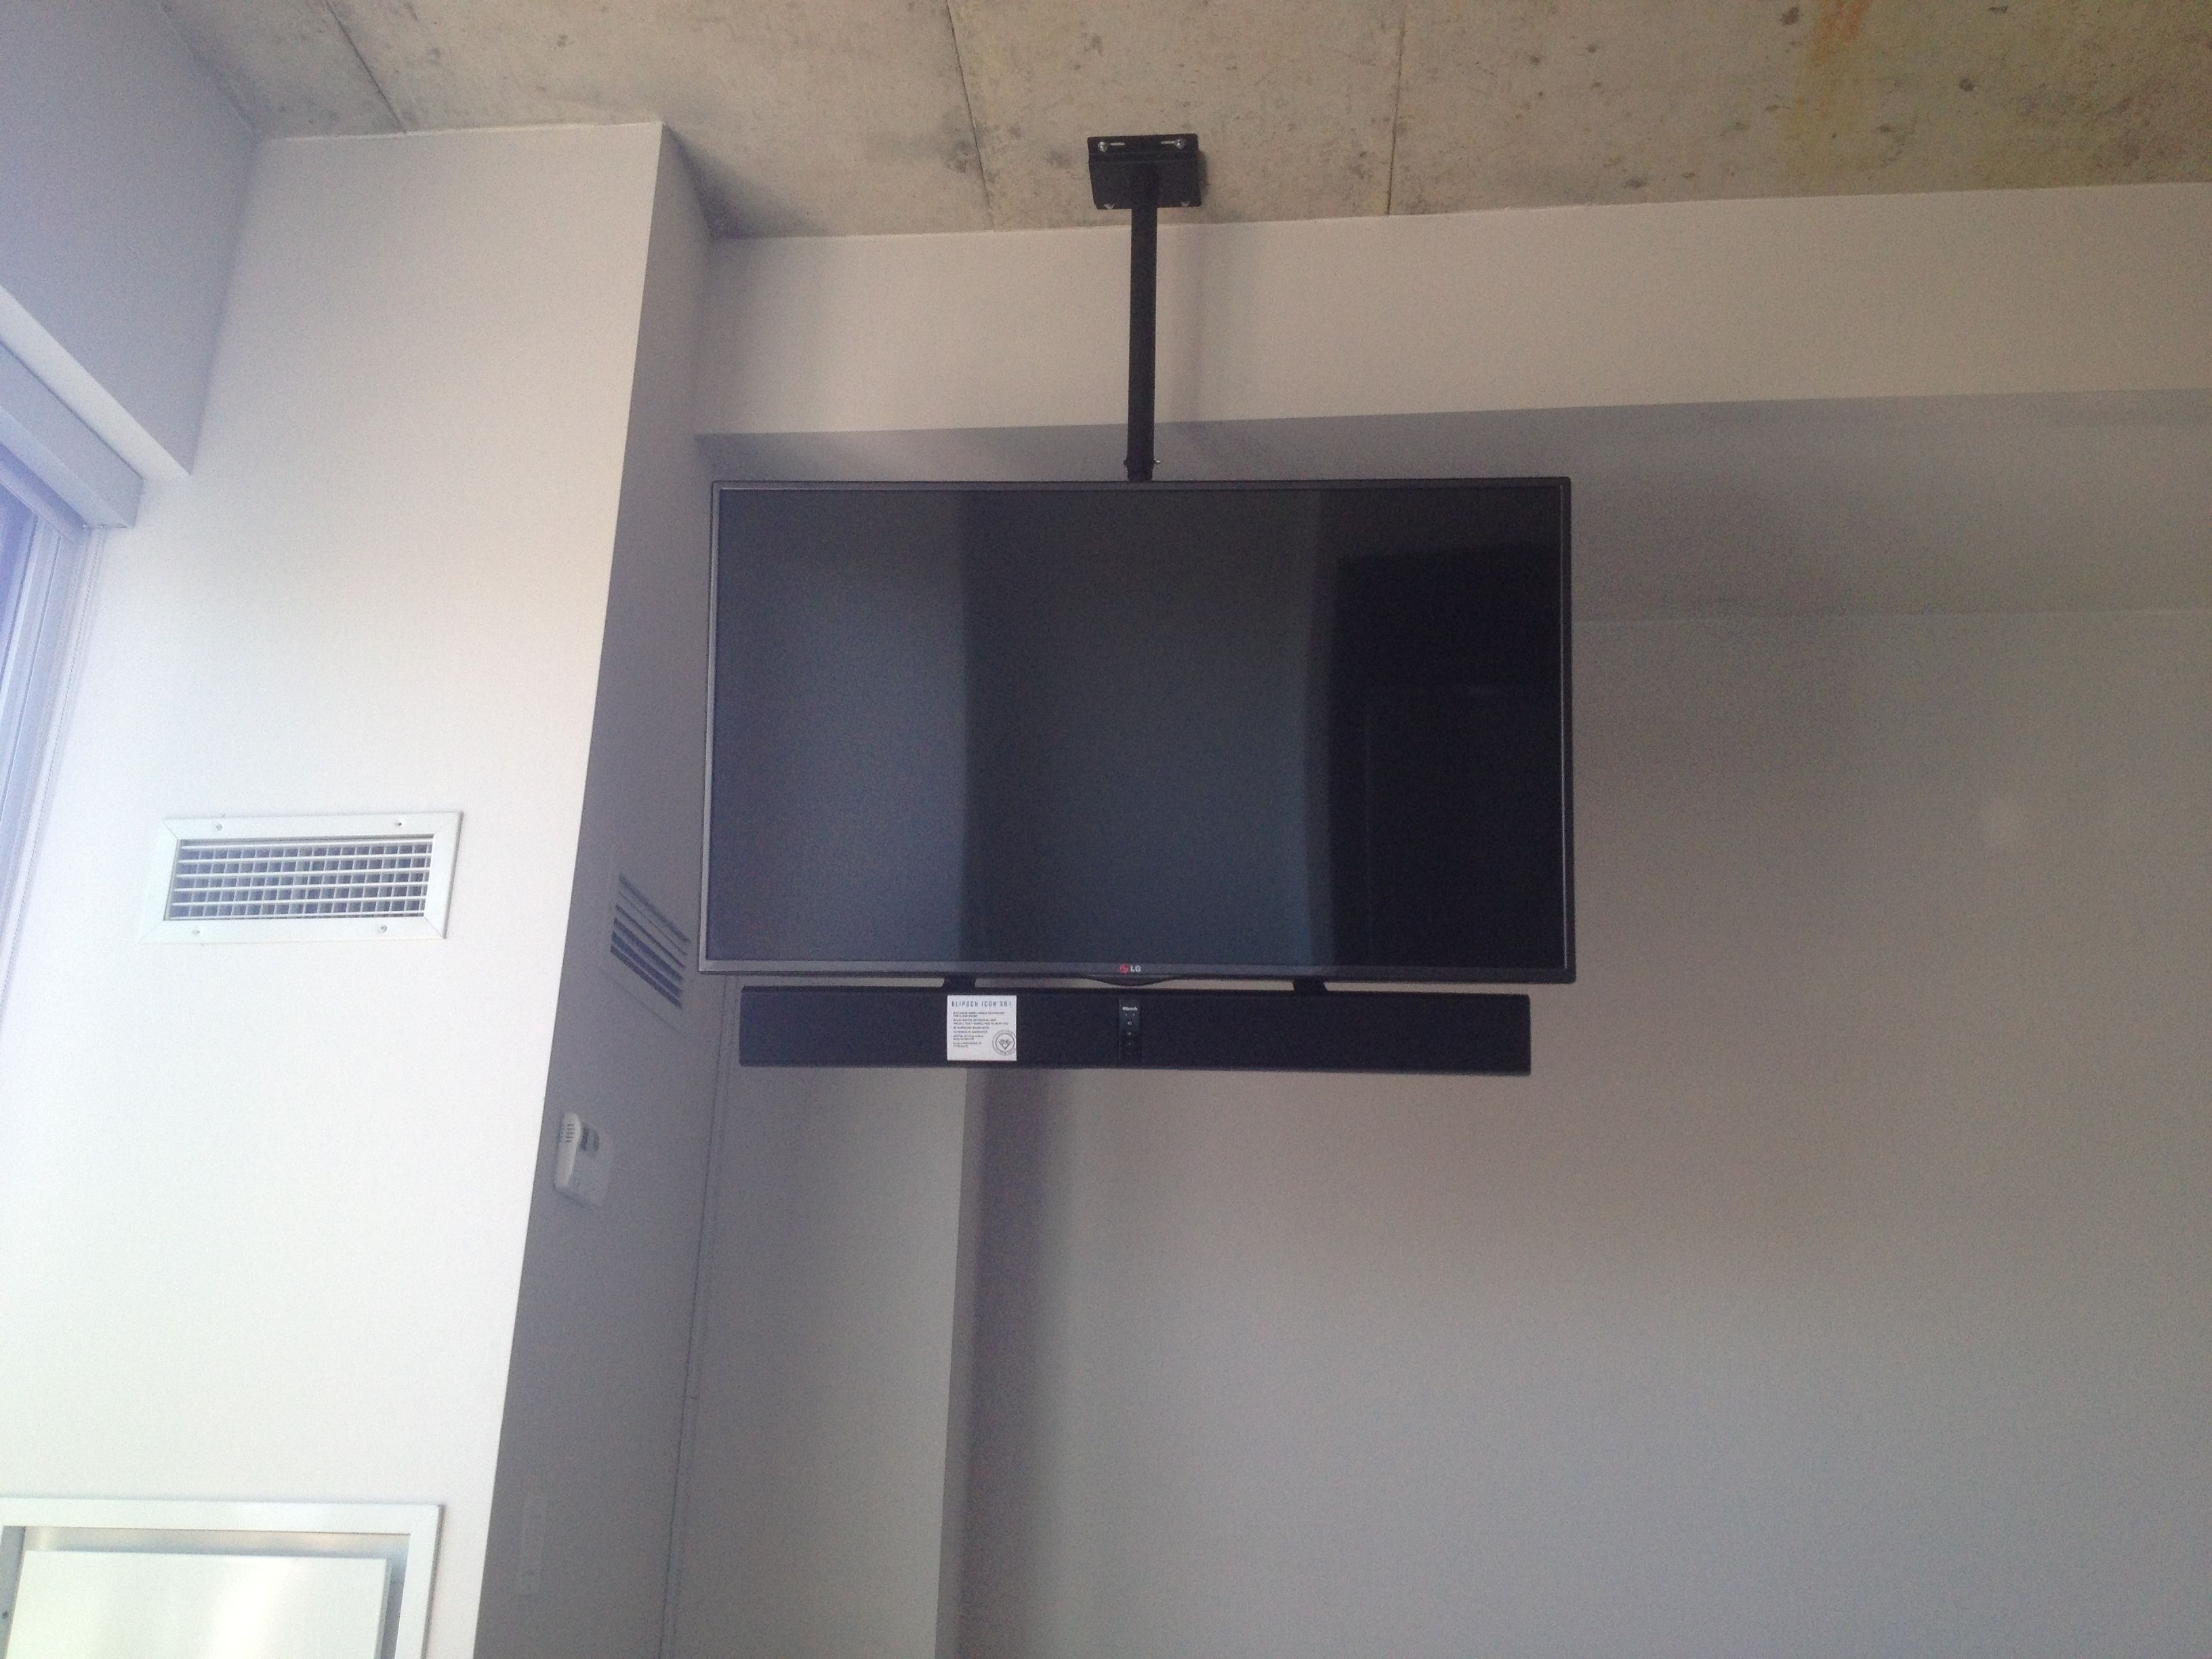 Klipsch Sound Bar Mounted Below The Tv Using Sound Bar